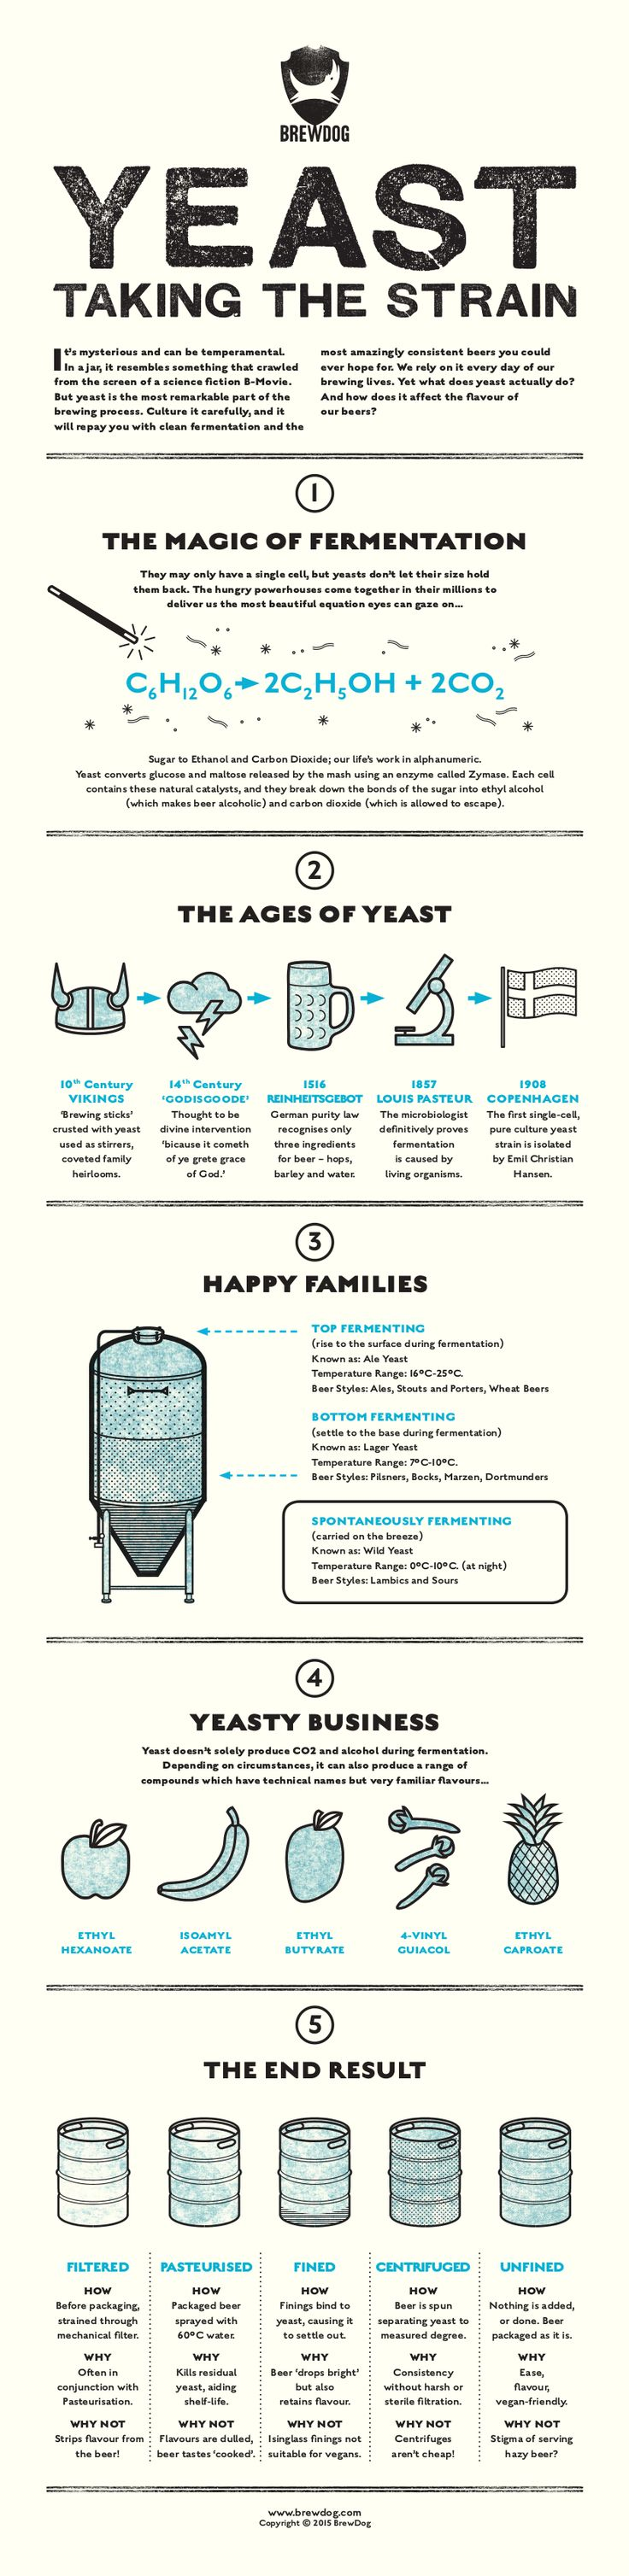 YEAST: TAKING THE STRAIN - BrewDog Beer Infographic